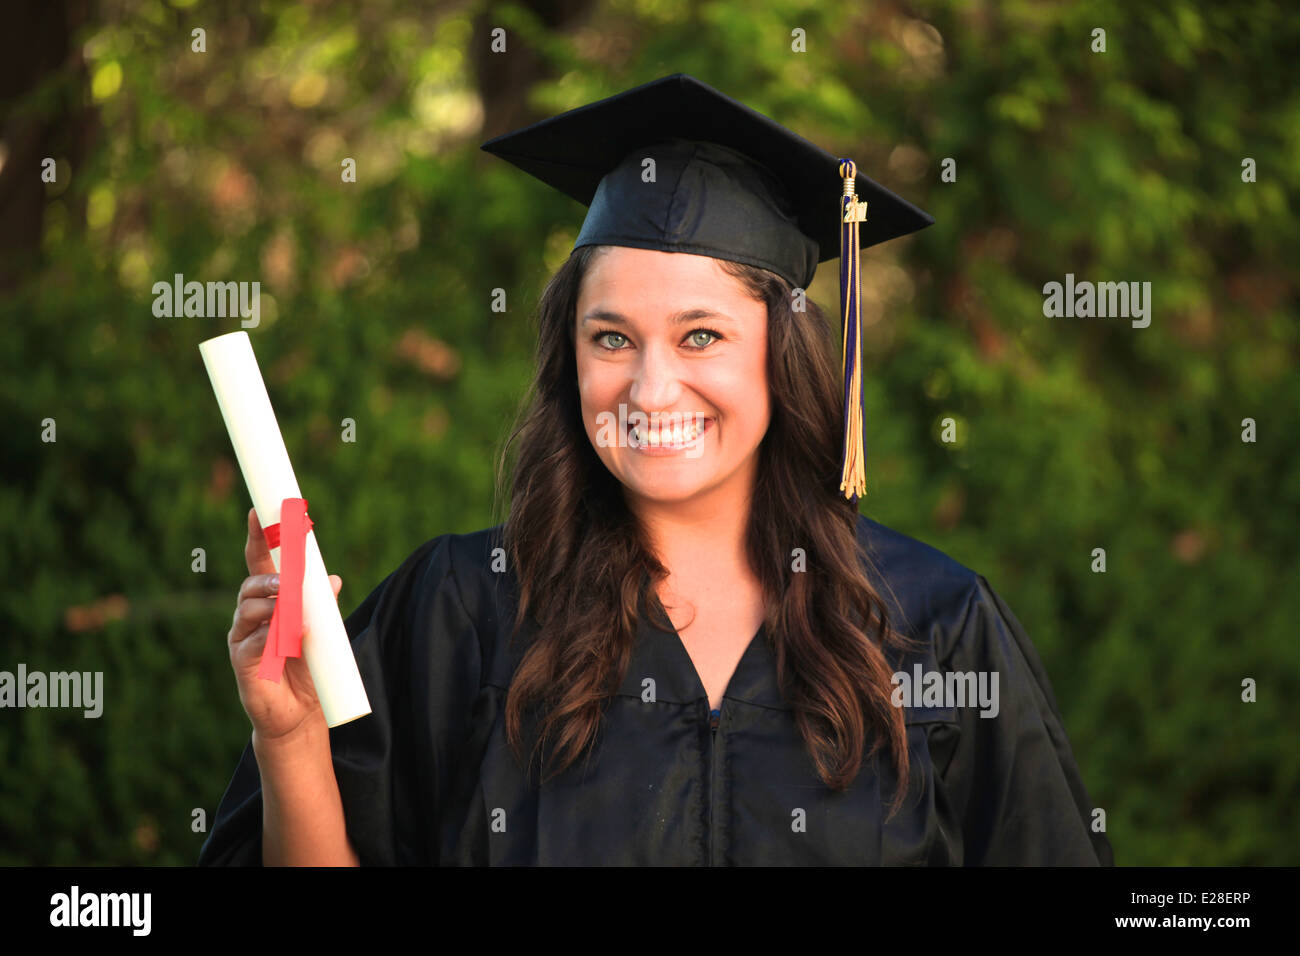 Attractive girl with blue eyes and brown hair wearing a graduation cap and gown and holding a diploma. - Stock Image